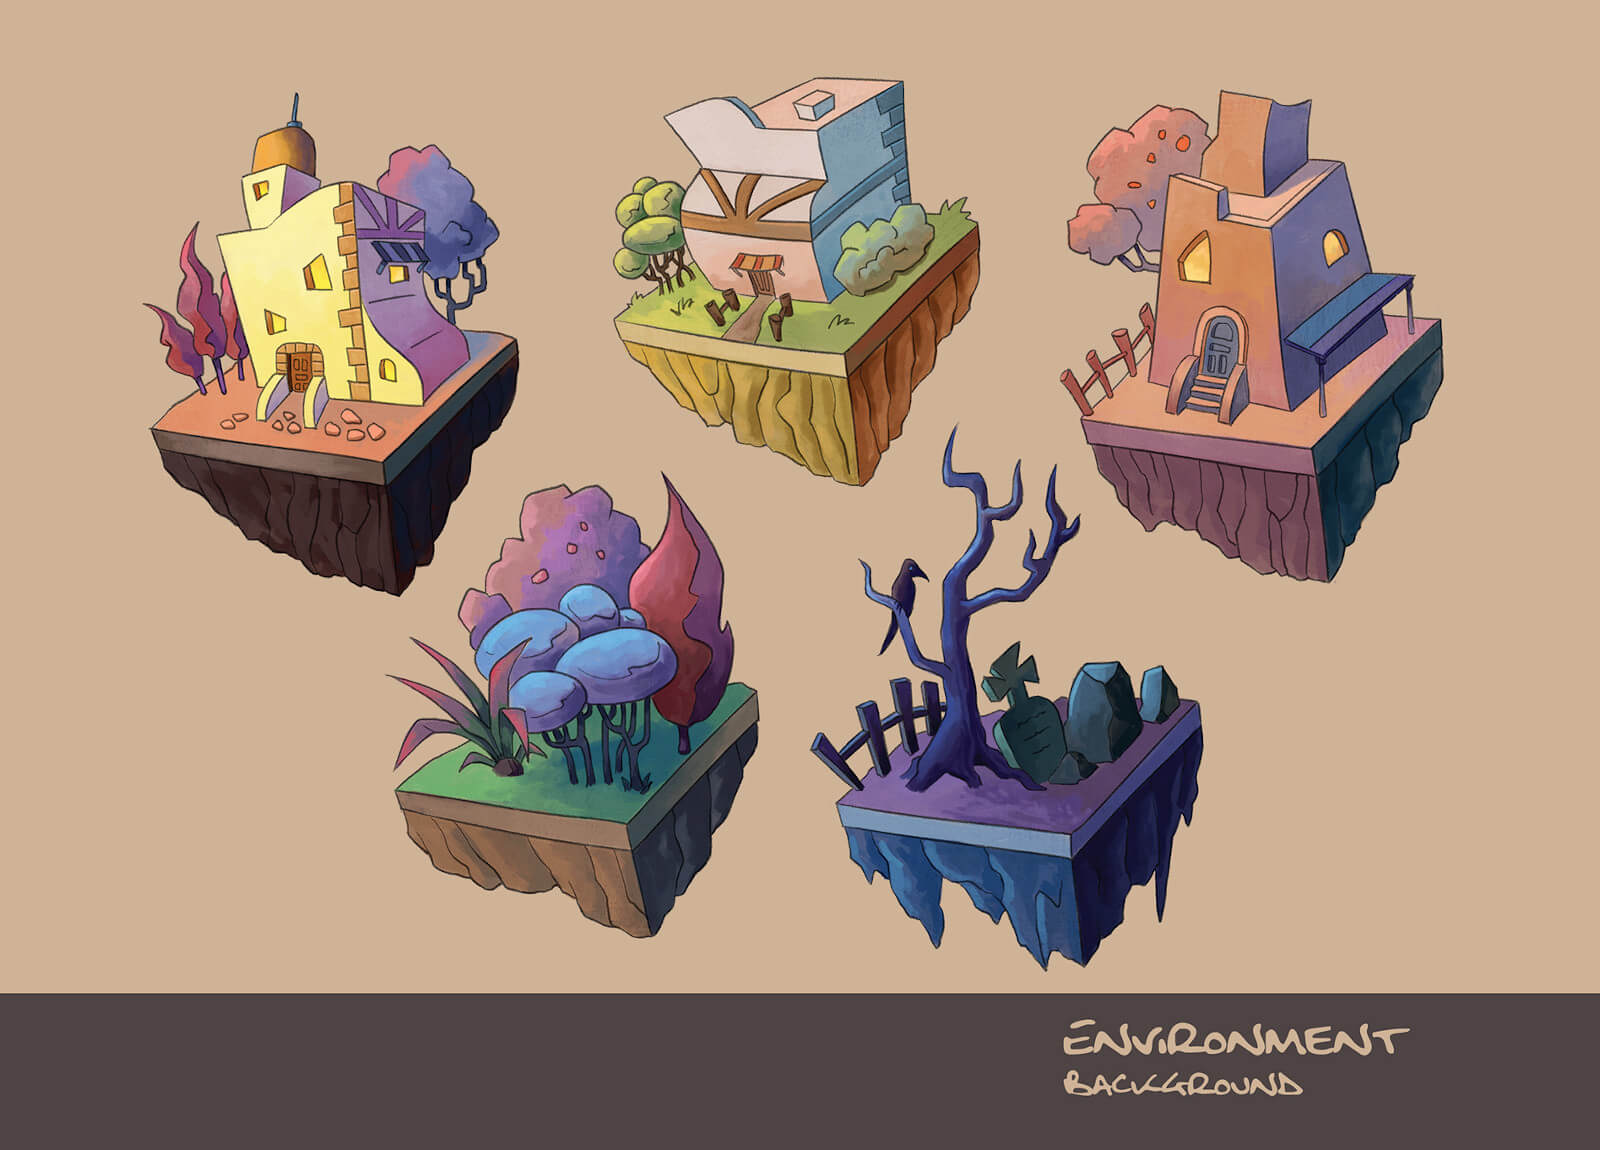 Environment art of buildings and a cemetery